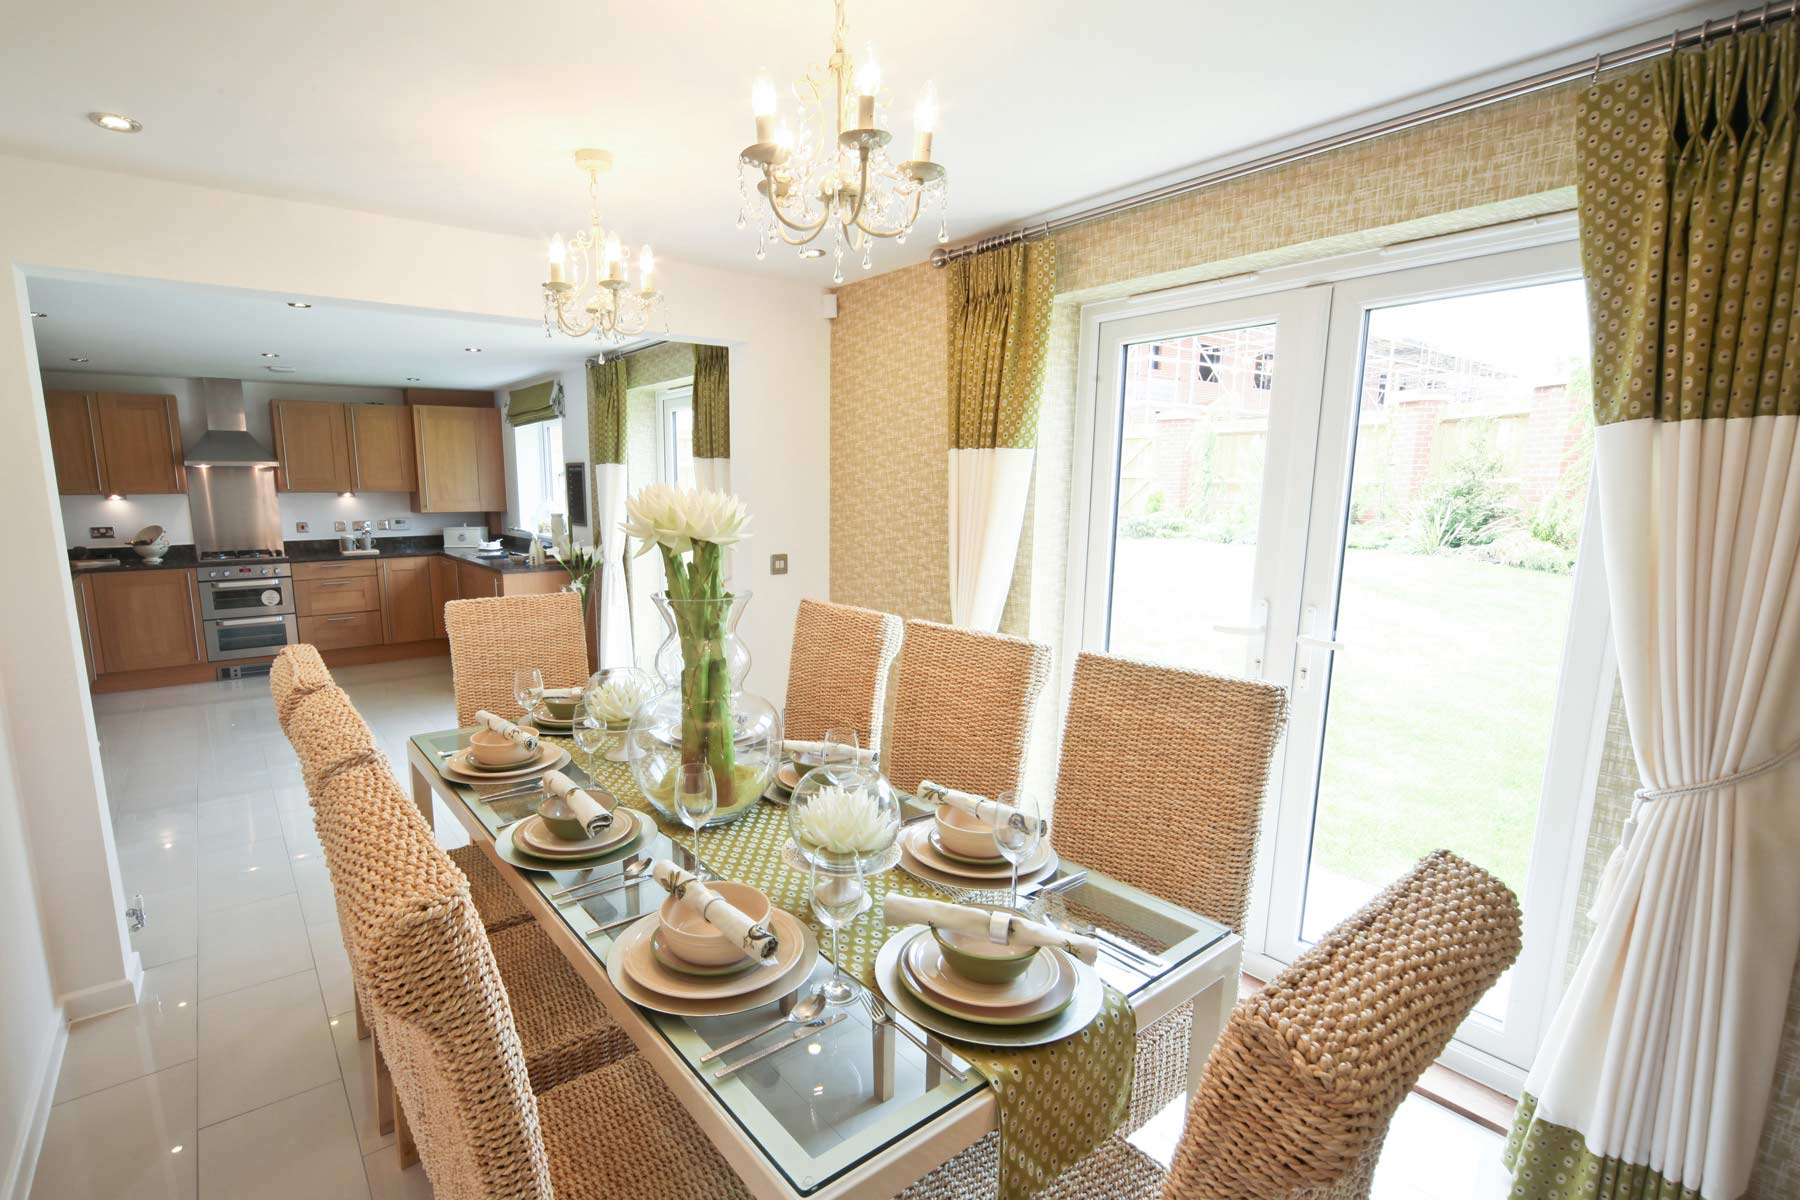 A typical Taylor Wimpey dining room and kitchen.